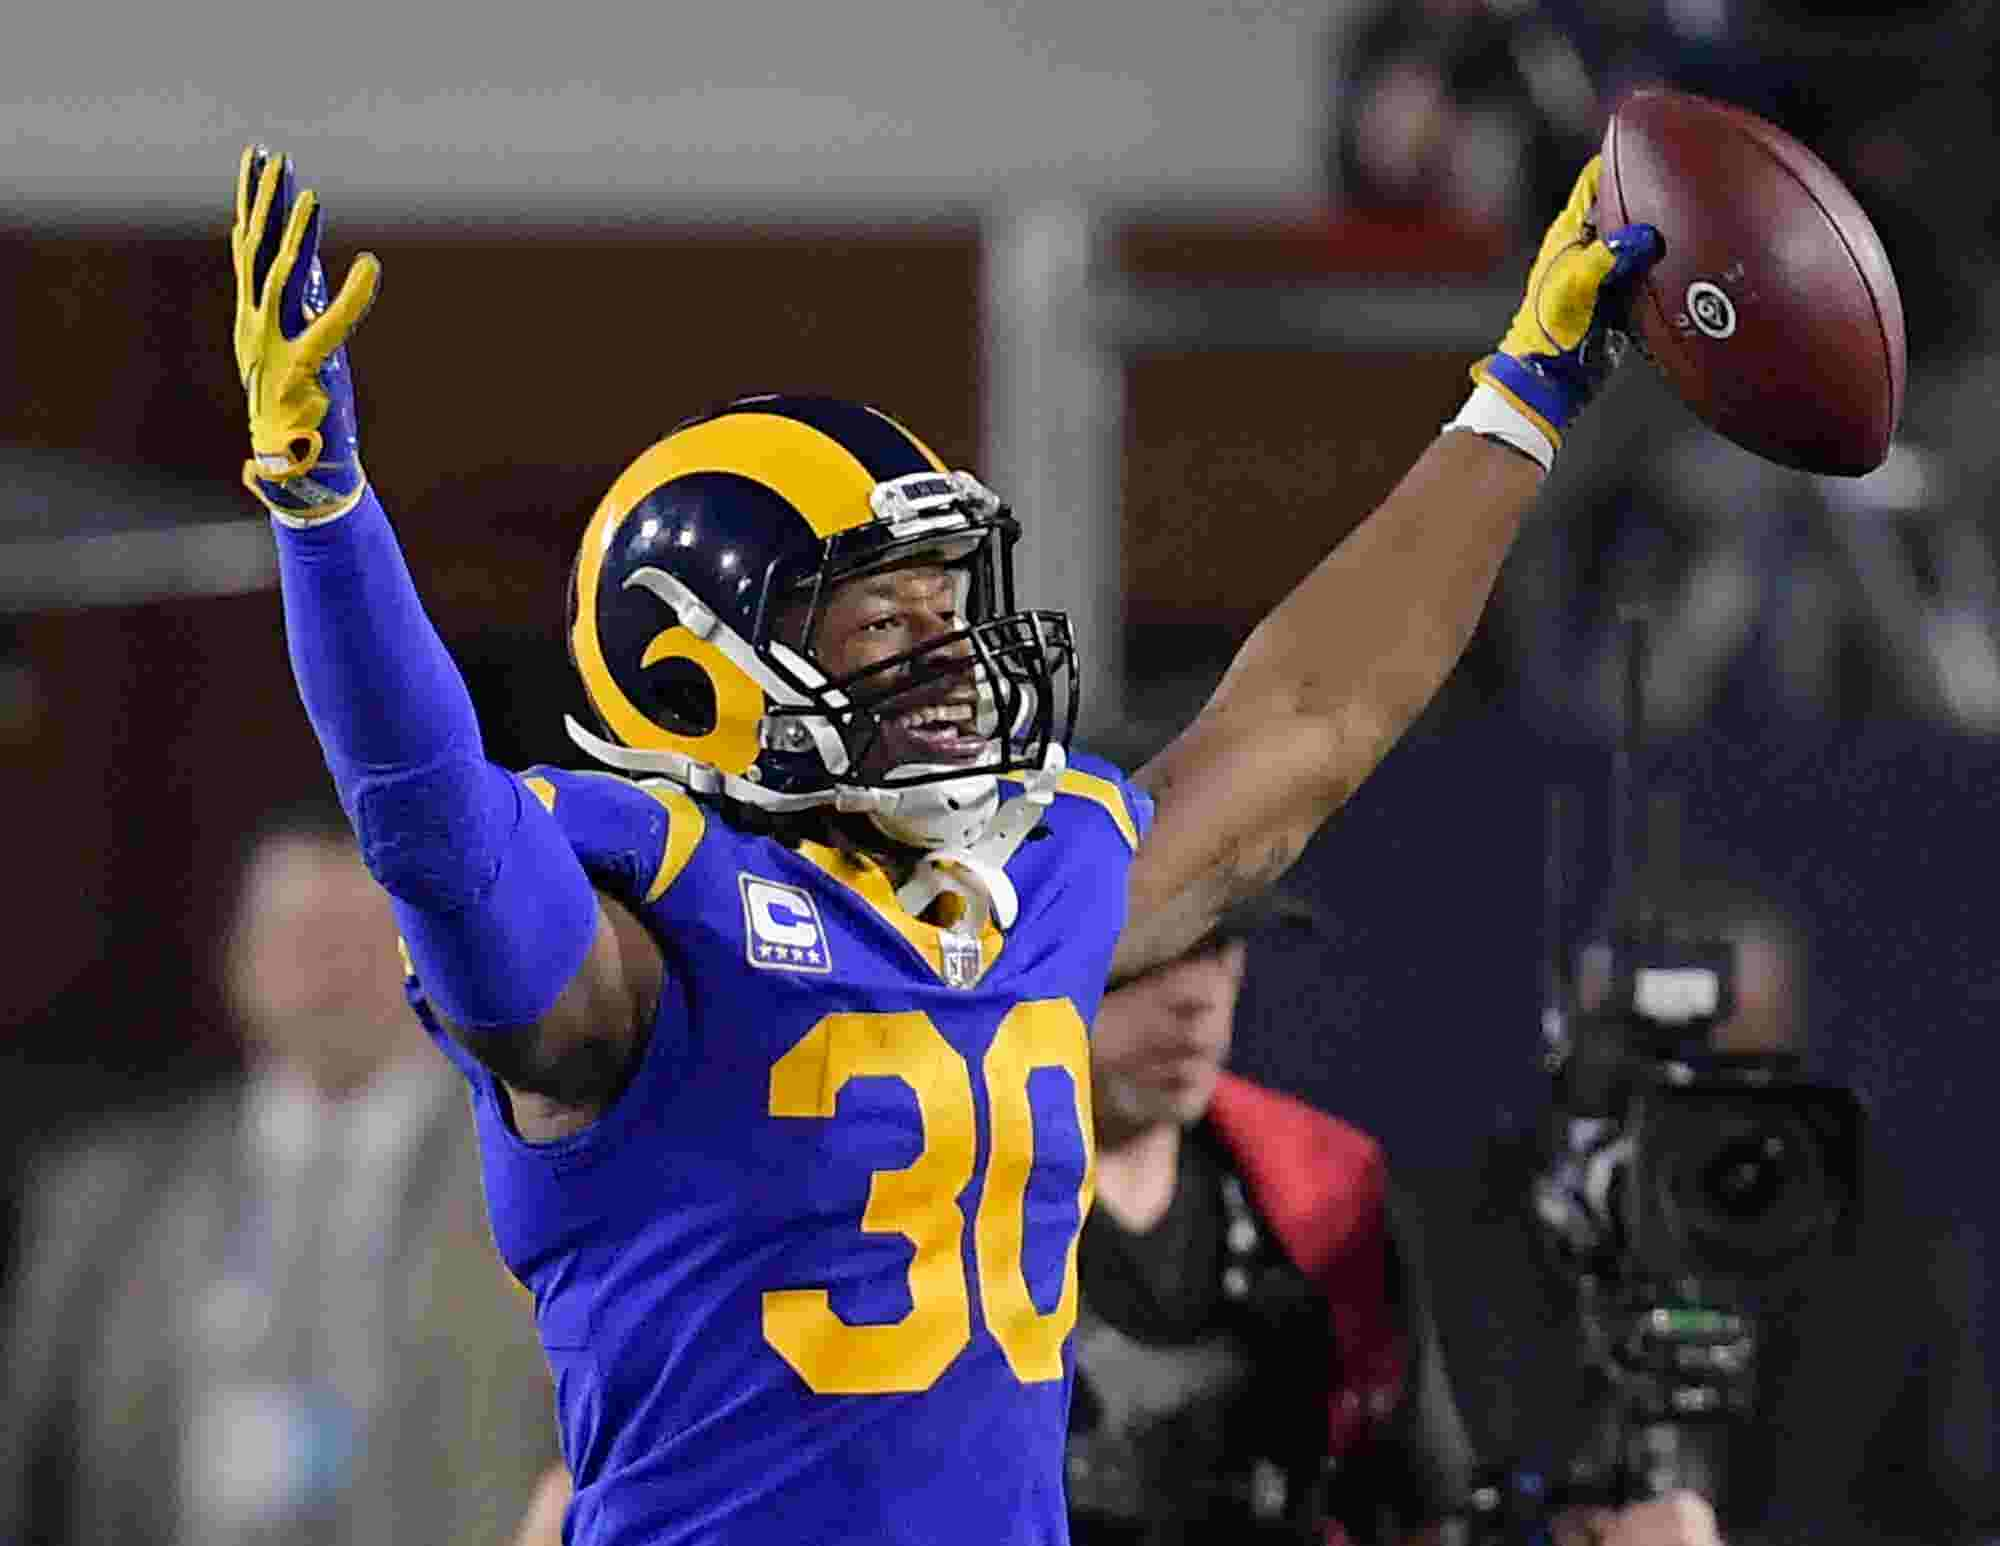 e9660796f Improbable Super Bowl path  Why Rams RB C.J. Anderson doesn t see it that  way